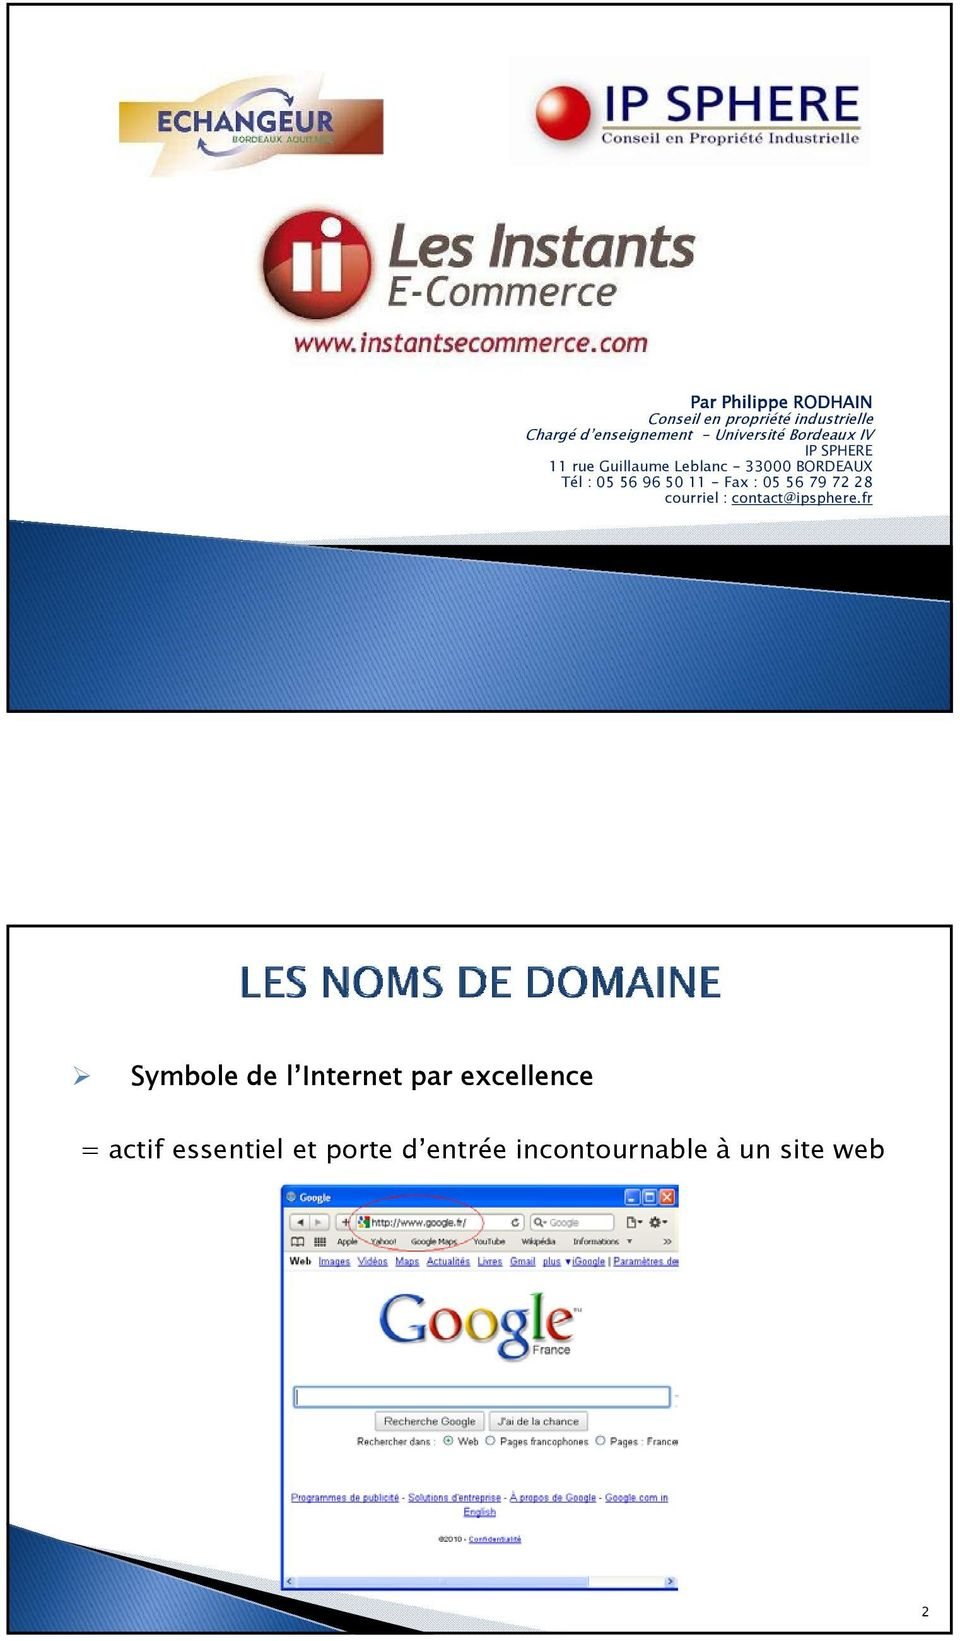 05 56 96 50 11 - Fax : 05 56 79 72 28 courriel : contact@ipsphere.